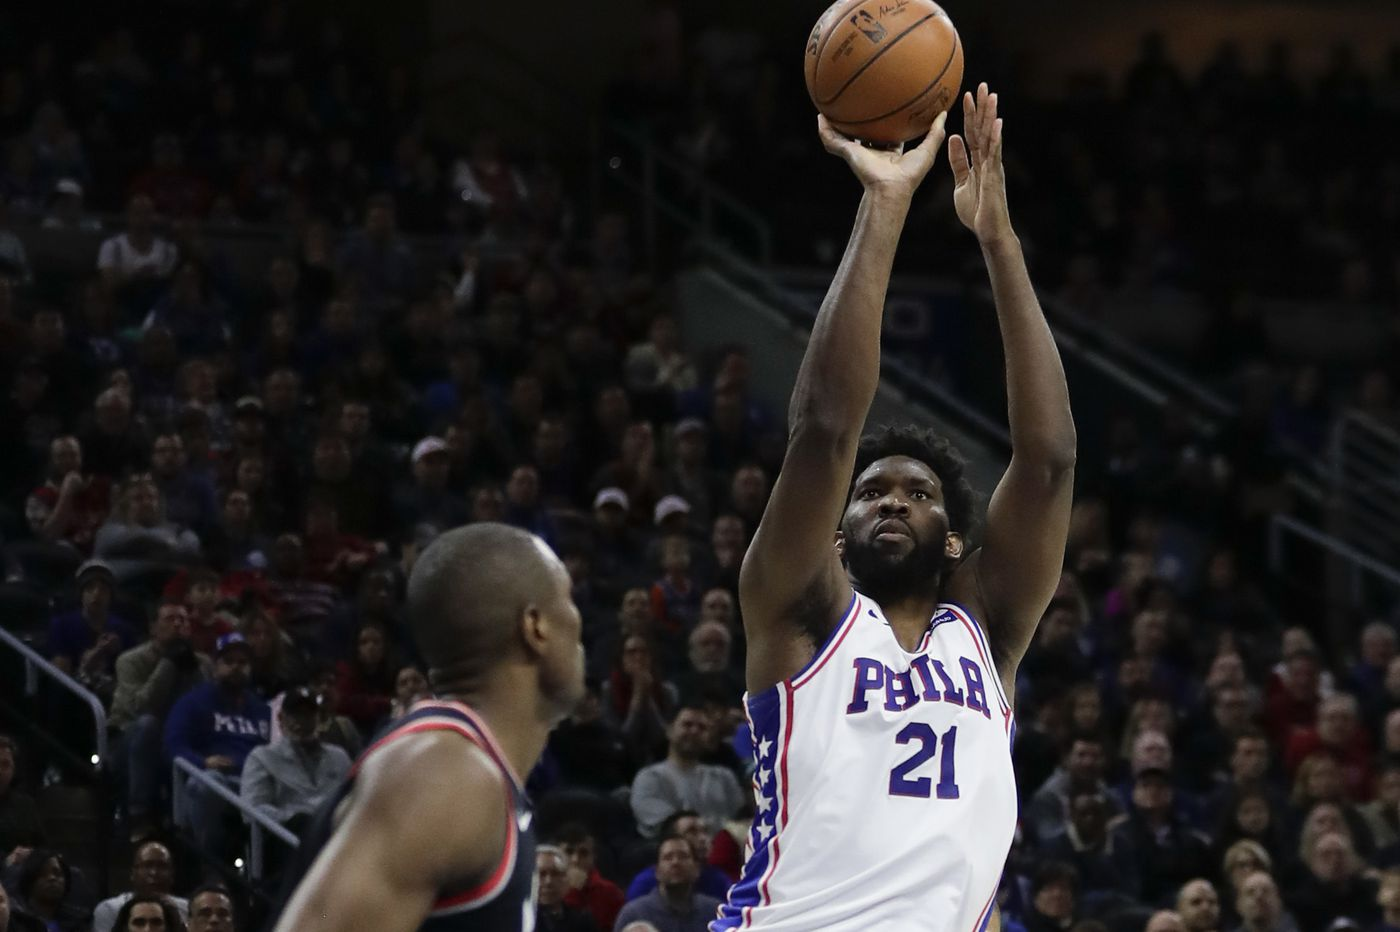 Sixers podcast: Late turnovers, another off night vs. Raptors for Joel Embiid, Matisse Thybulle's career night